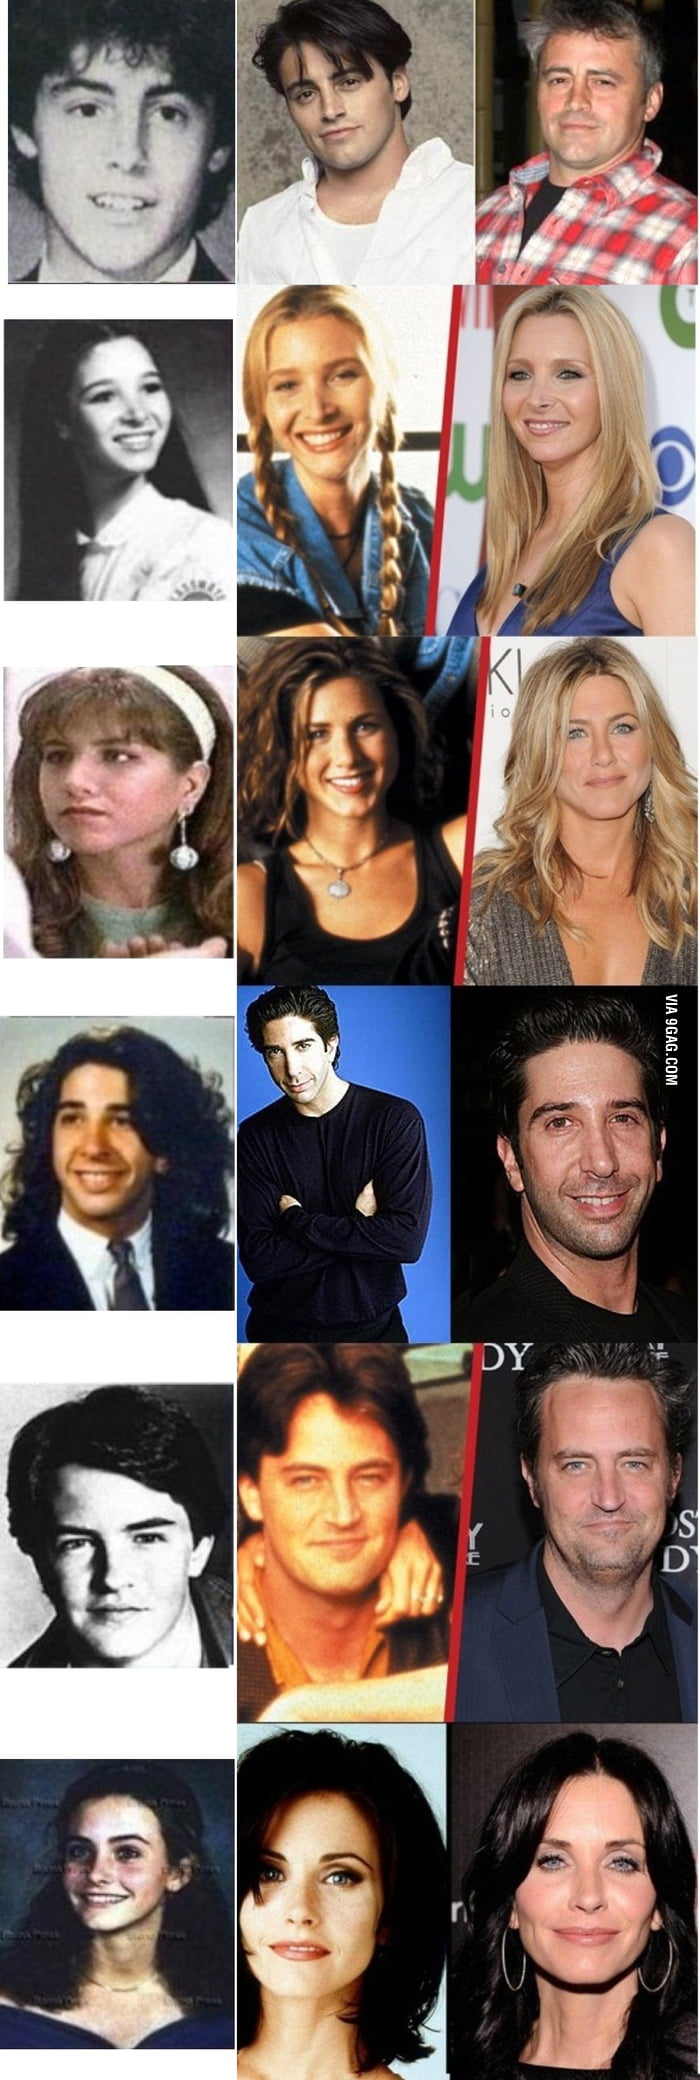 Friends cast, before/then/now - 9GAG